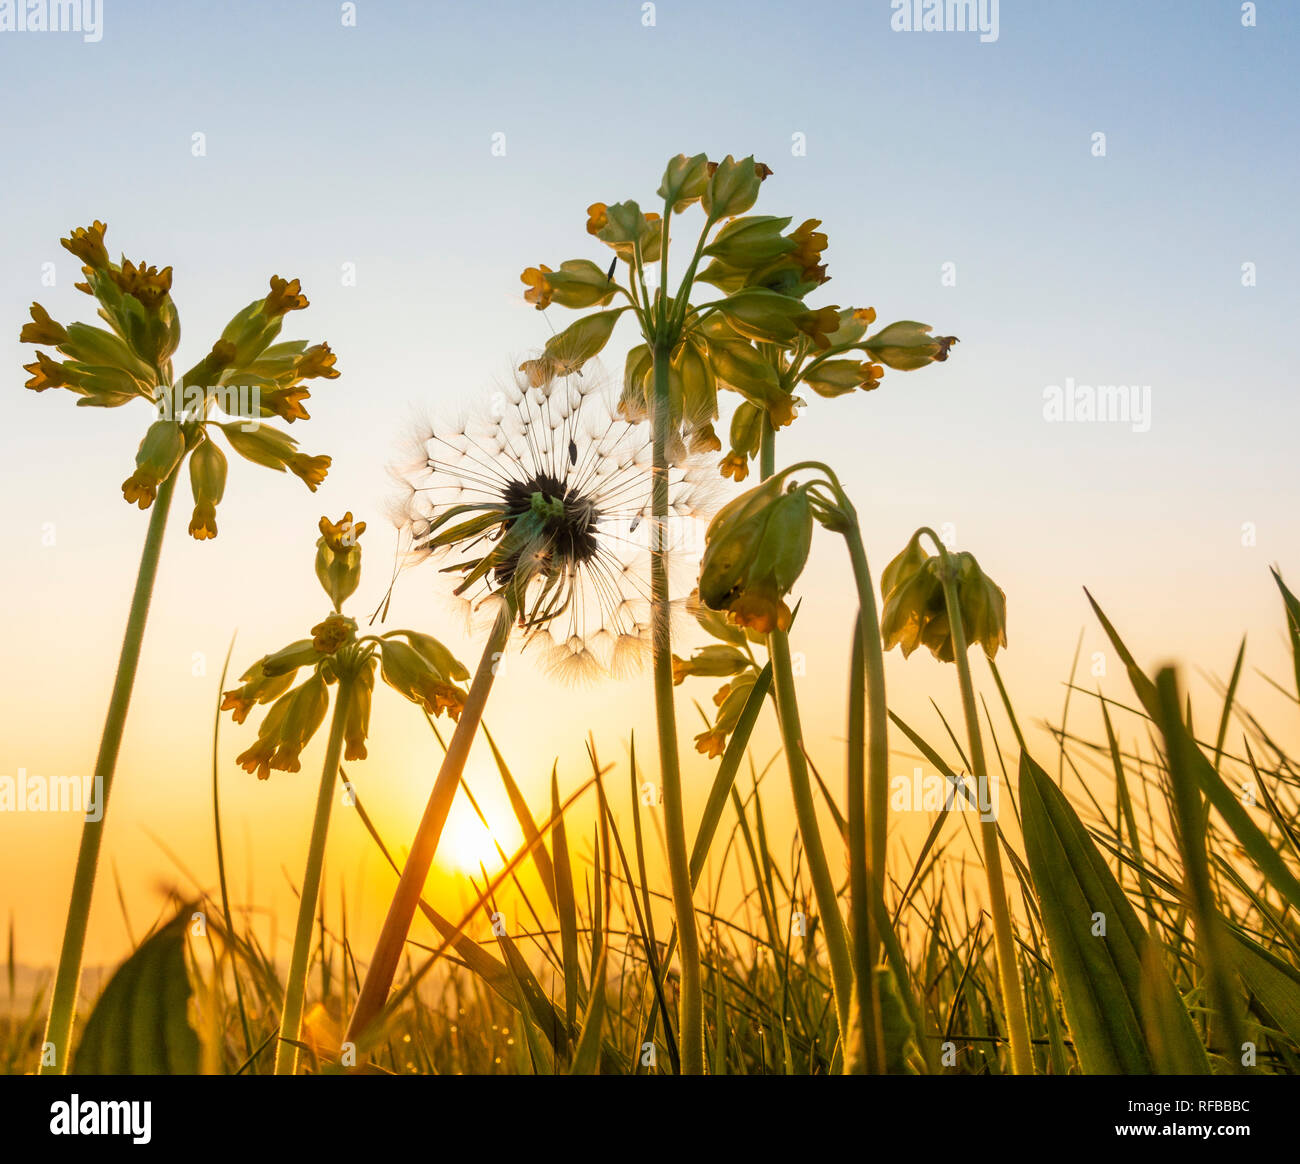 Primula Veris (Cowslip) and Dandelion clock seed in wildflower meadow at sunrise. UK Stock Photo